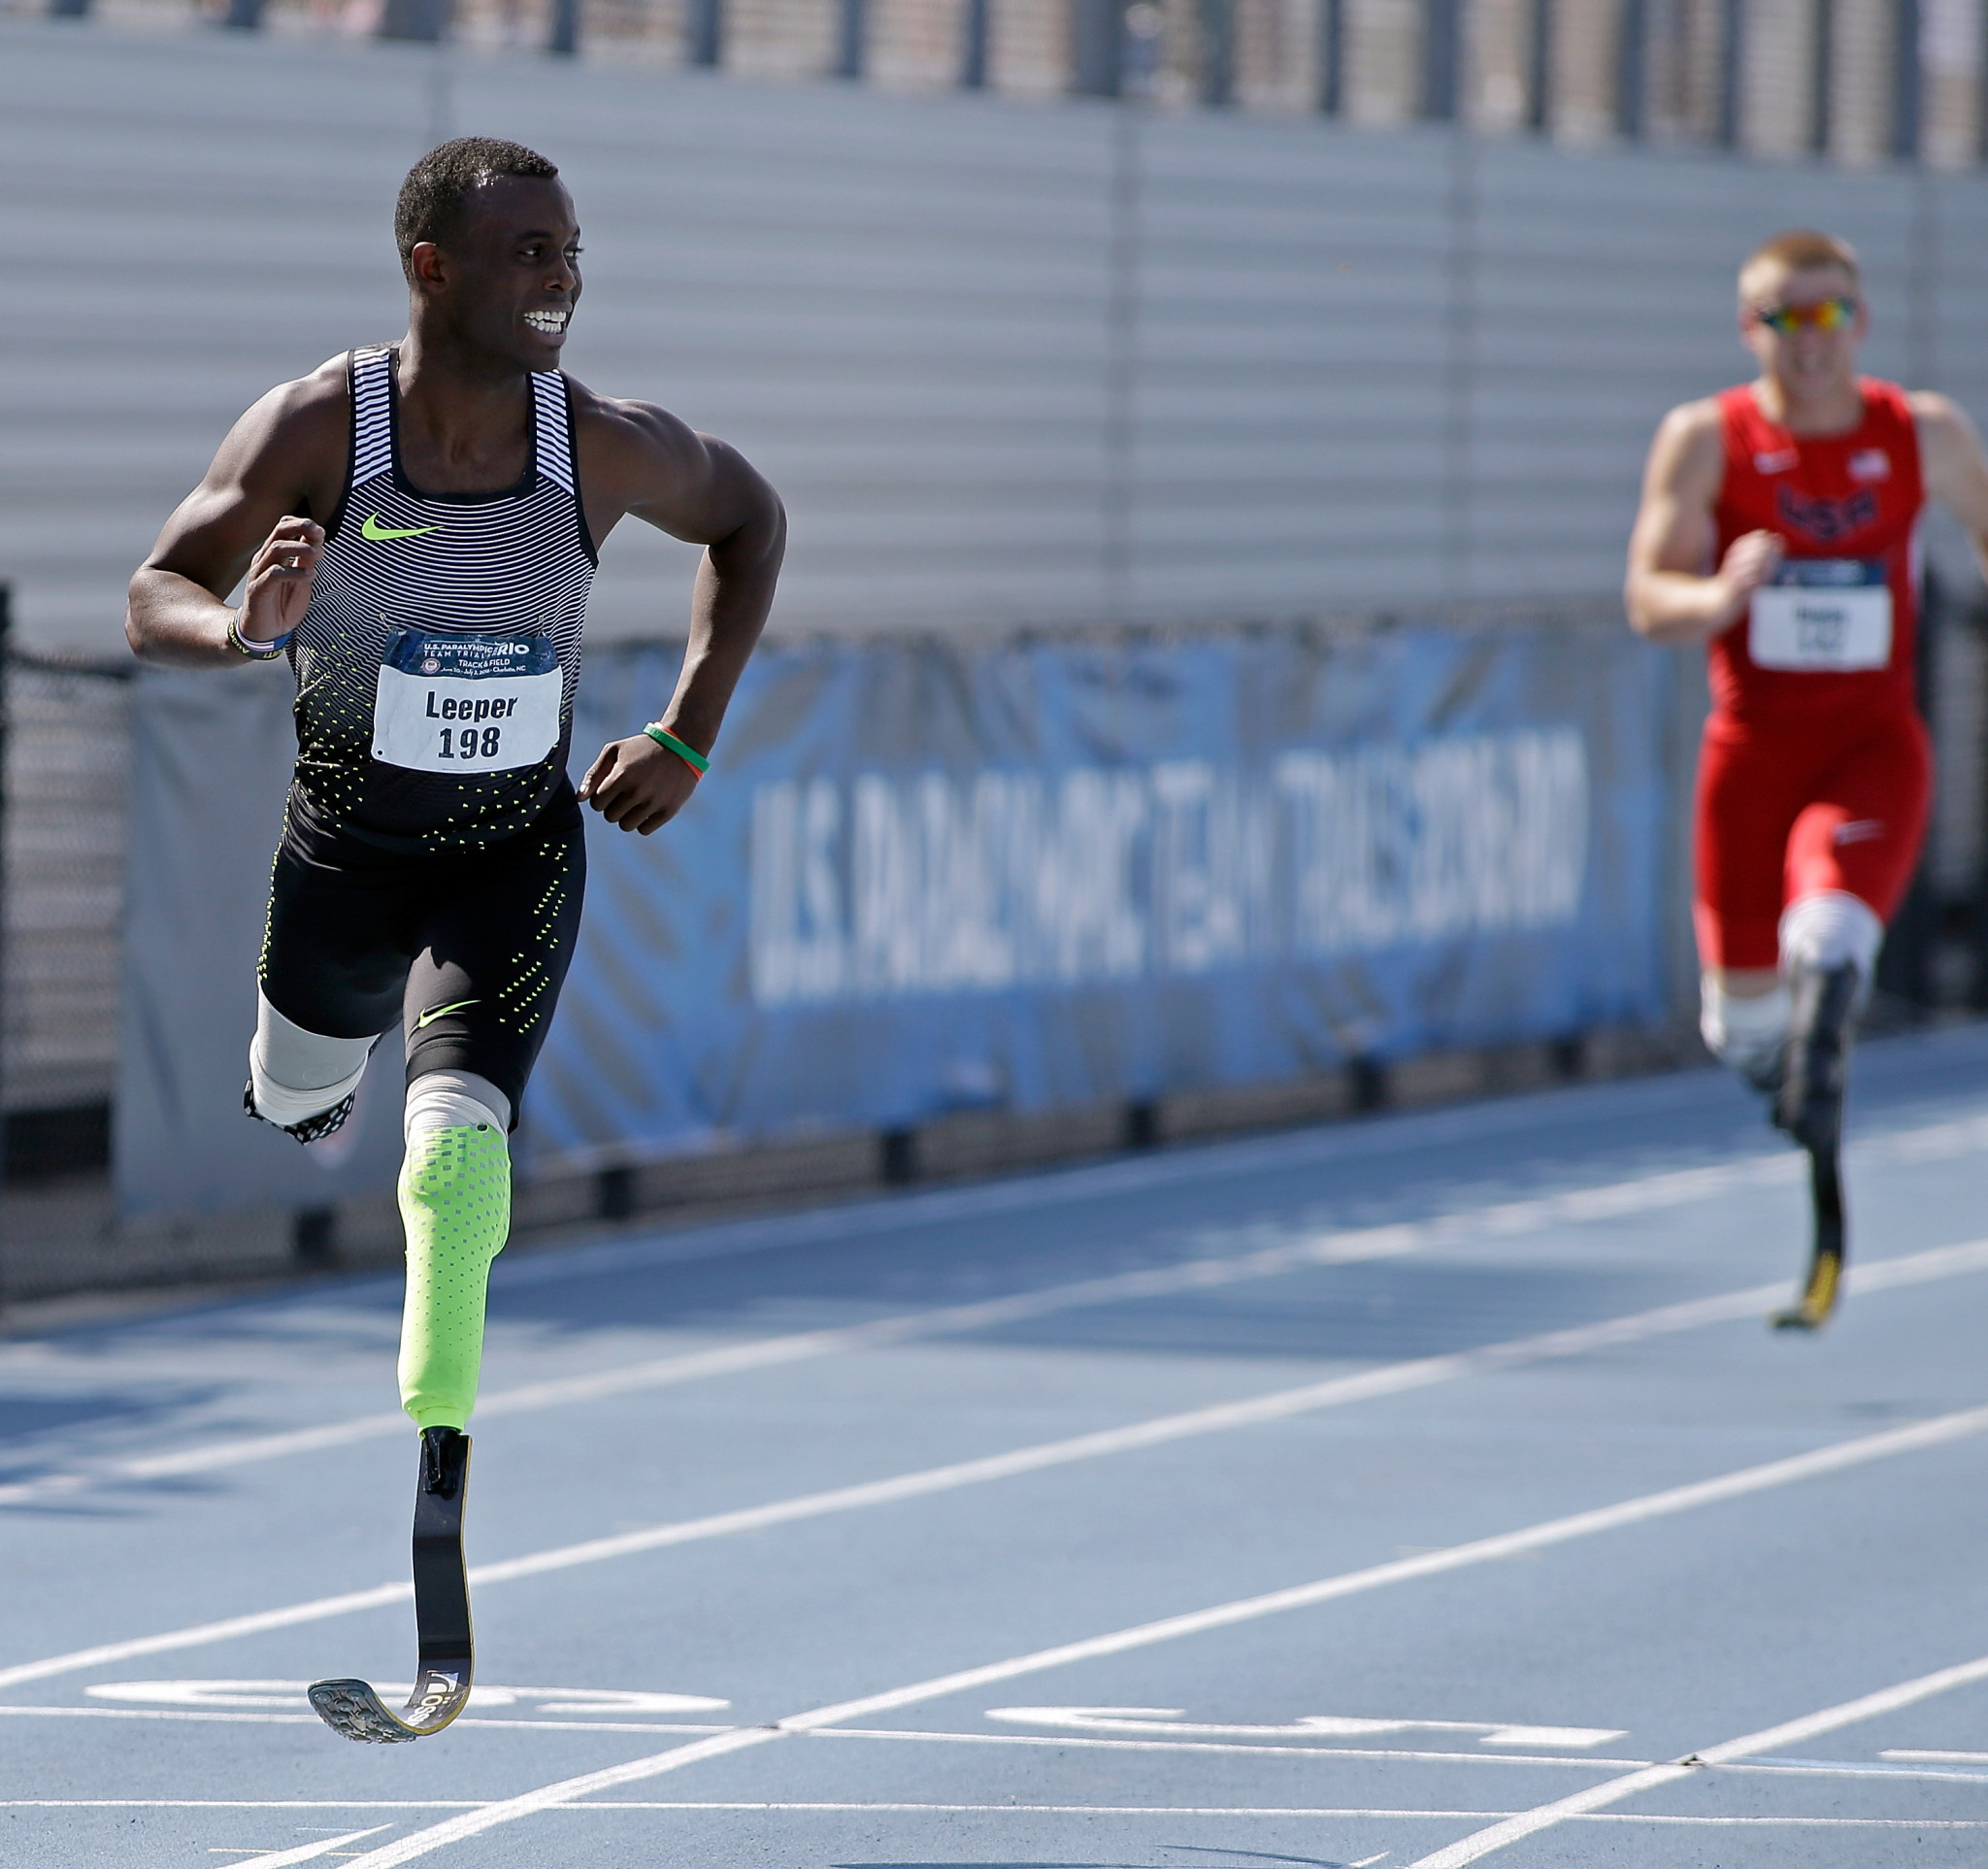 Blake Leeper of the United States has appealed World Athletic's decision to not allow him to compete against able-bodied athletes ©Getty Images